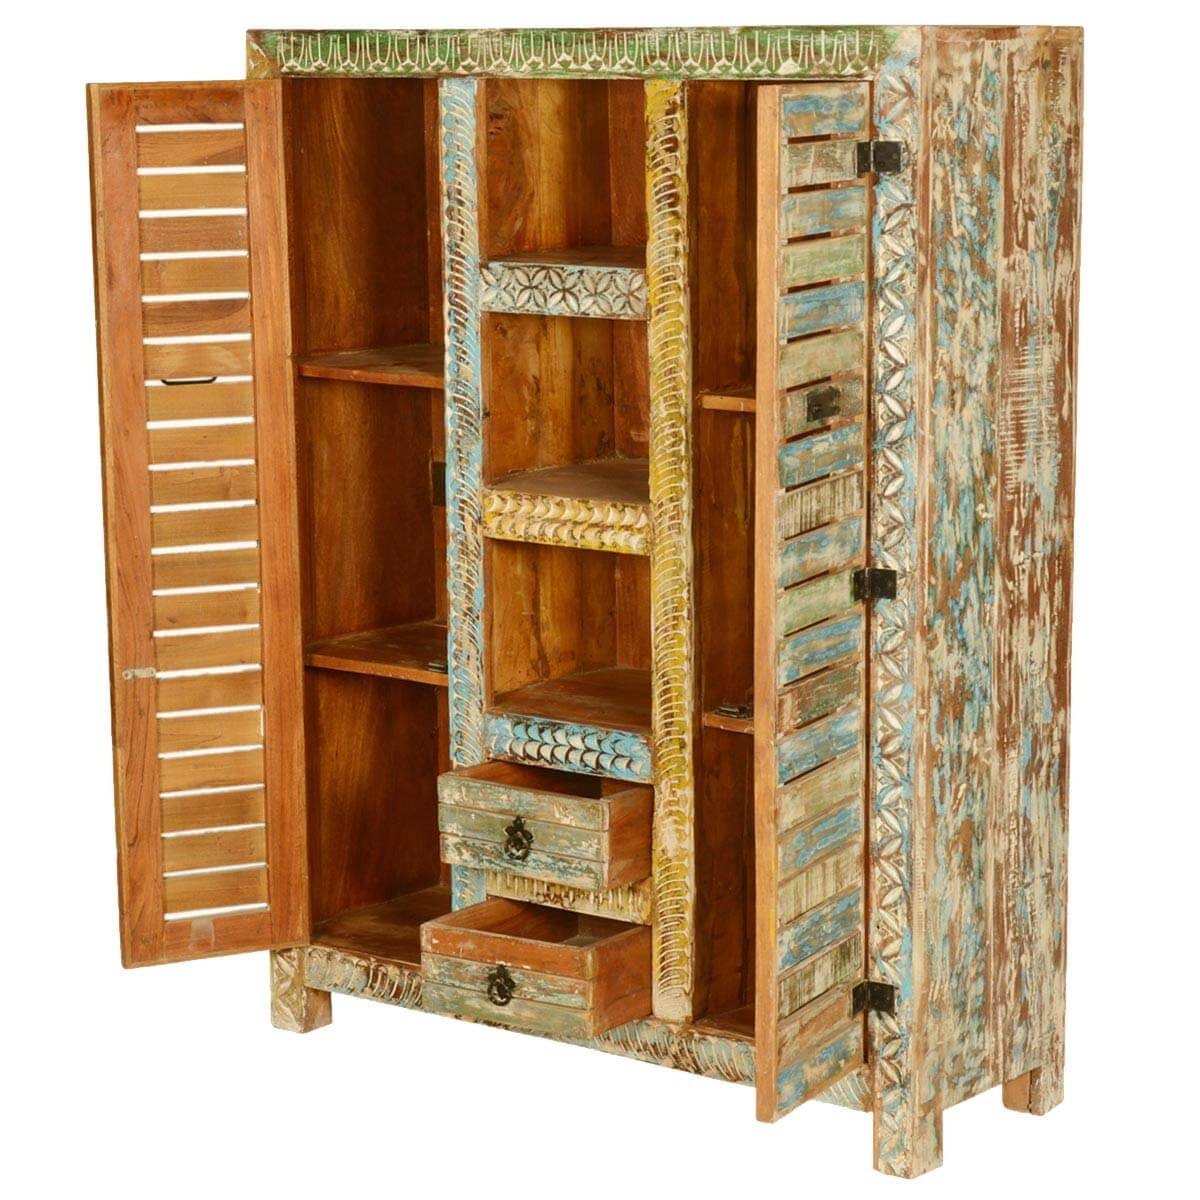 Millville locker doors reclaimed wood hand carved wall for Wood lockers with doors